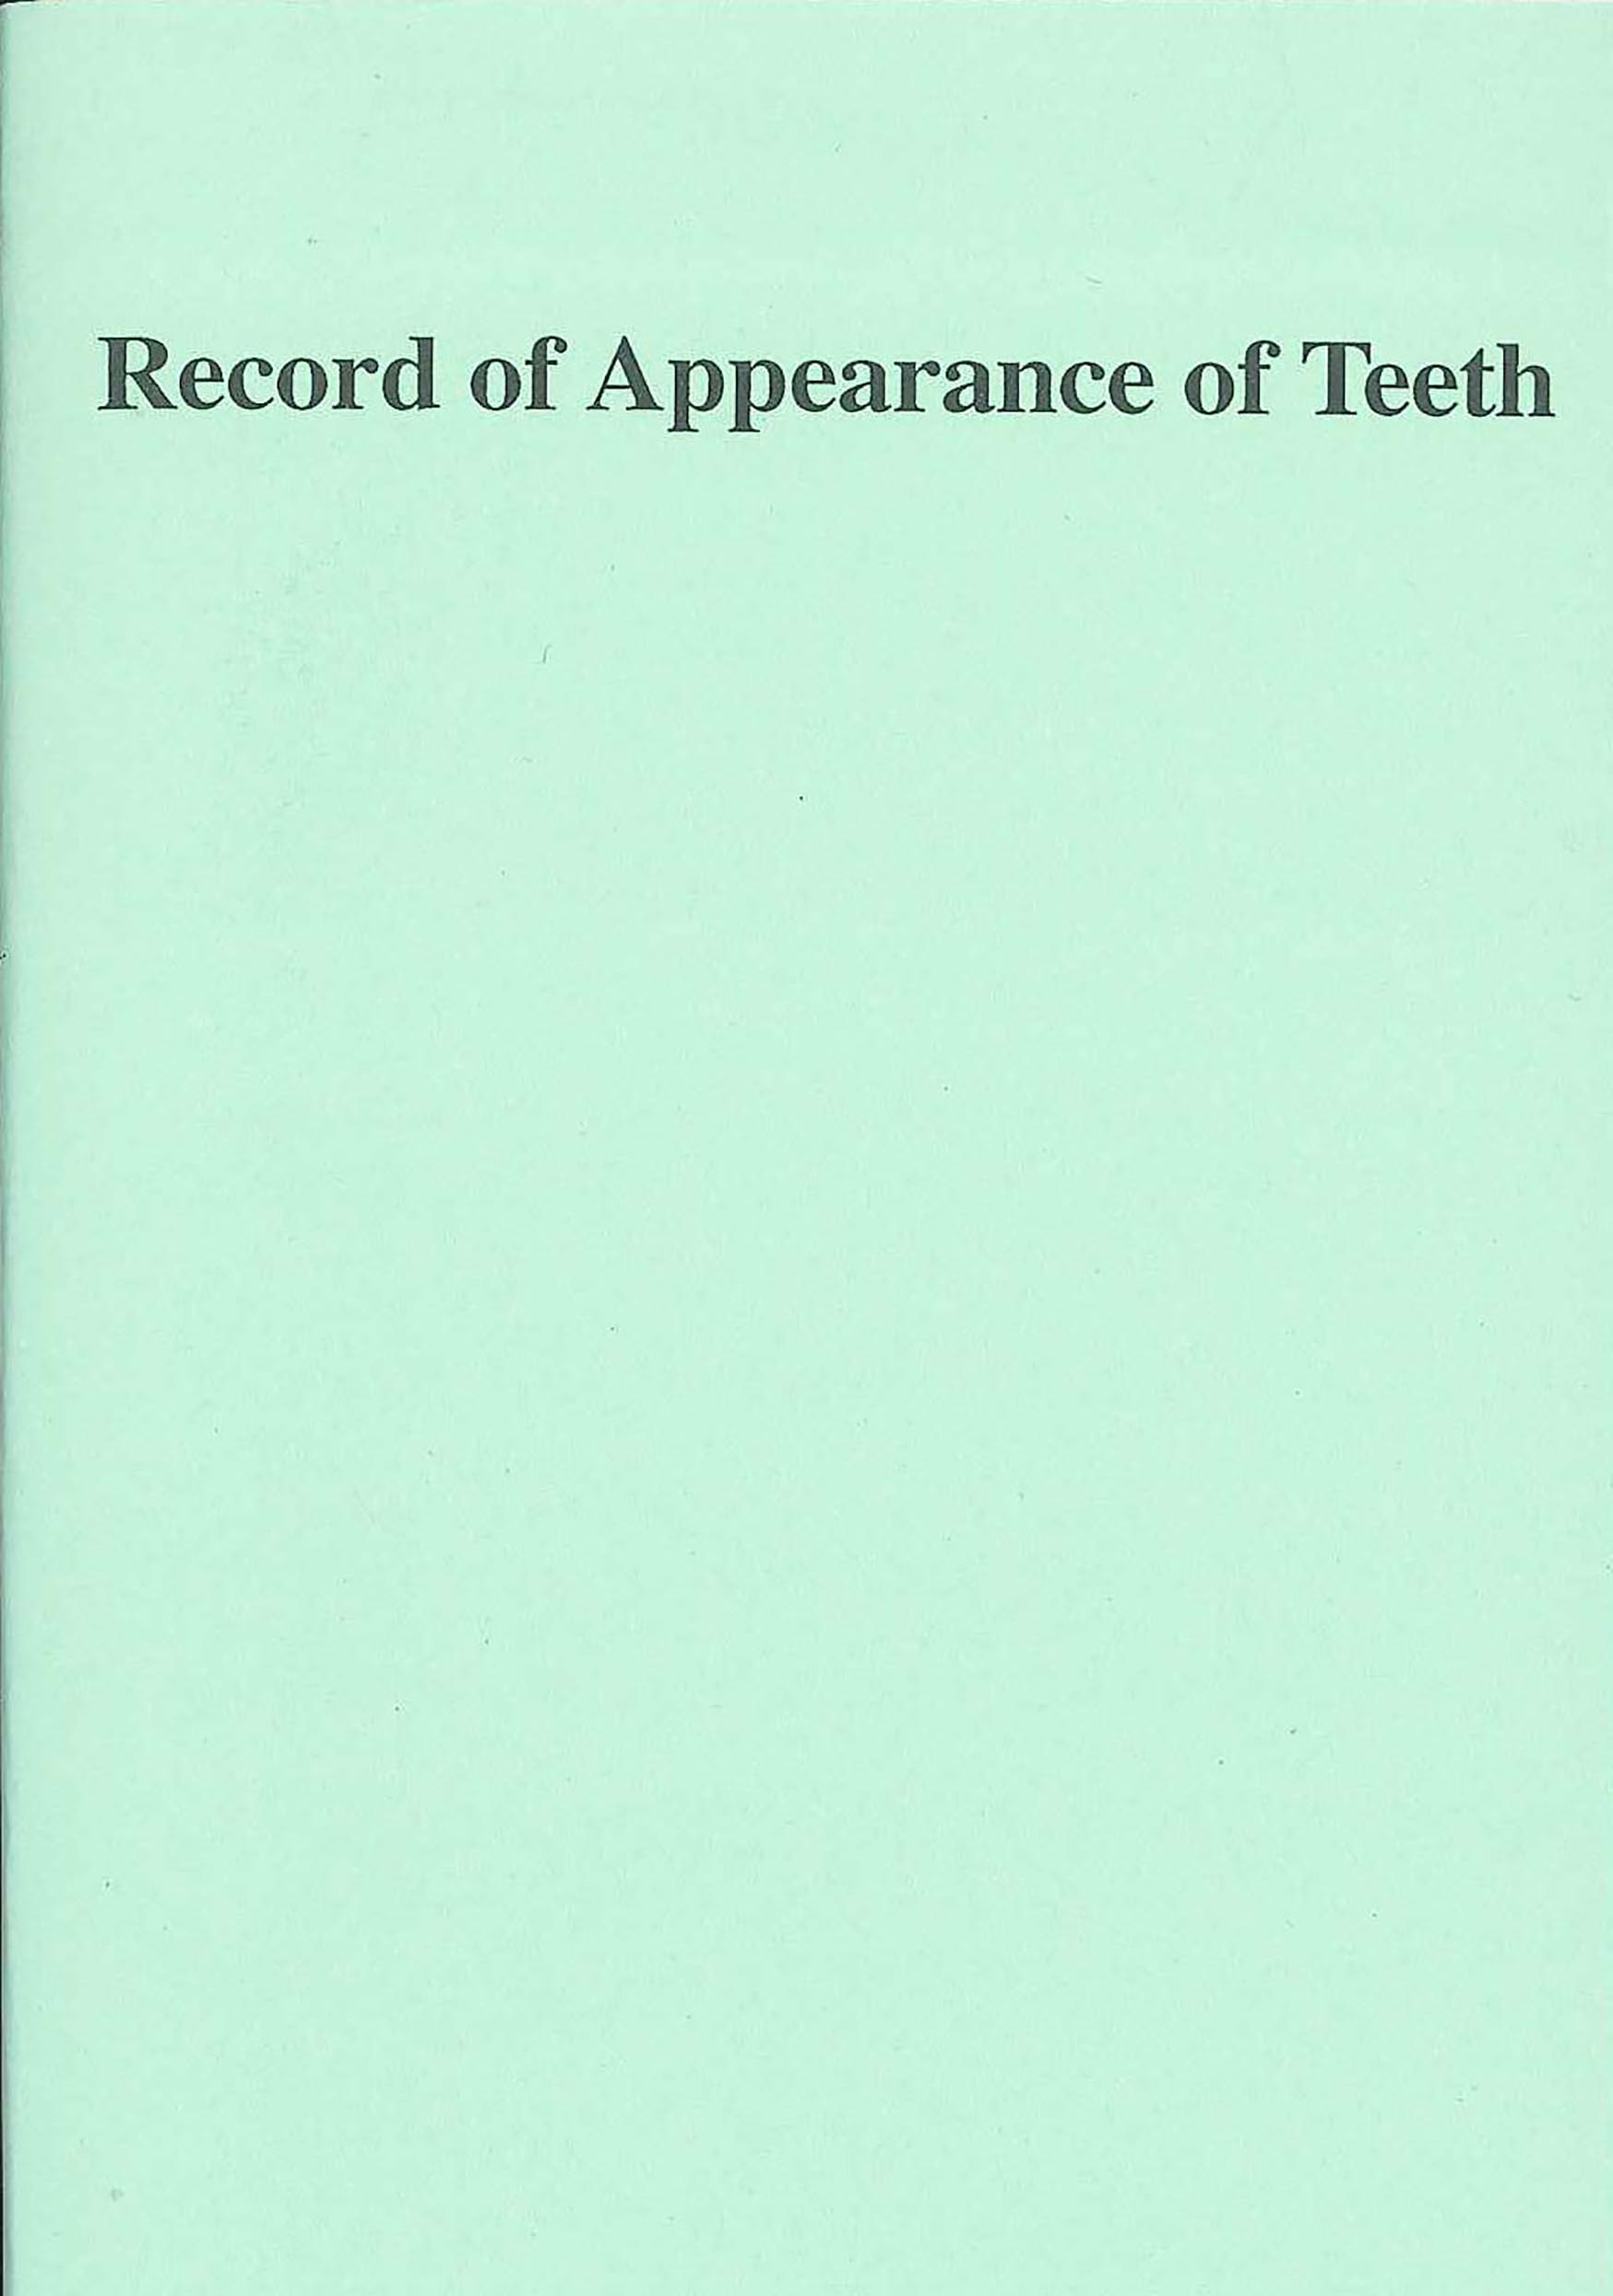 Record of Appearance of Teeth